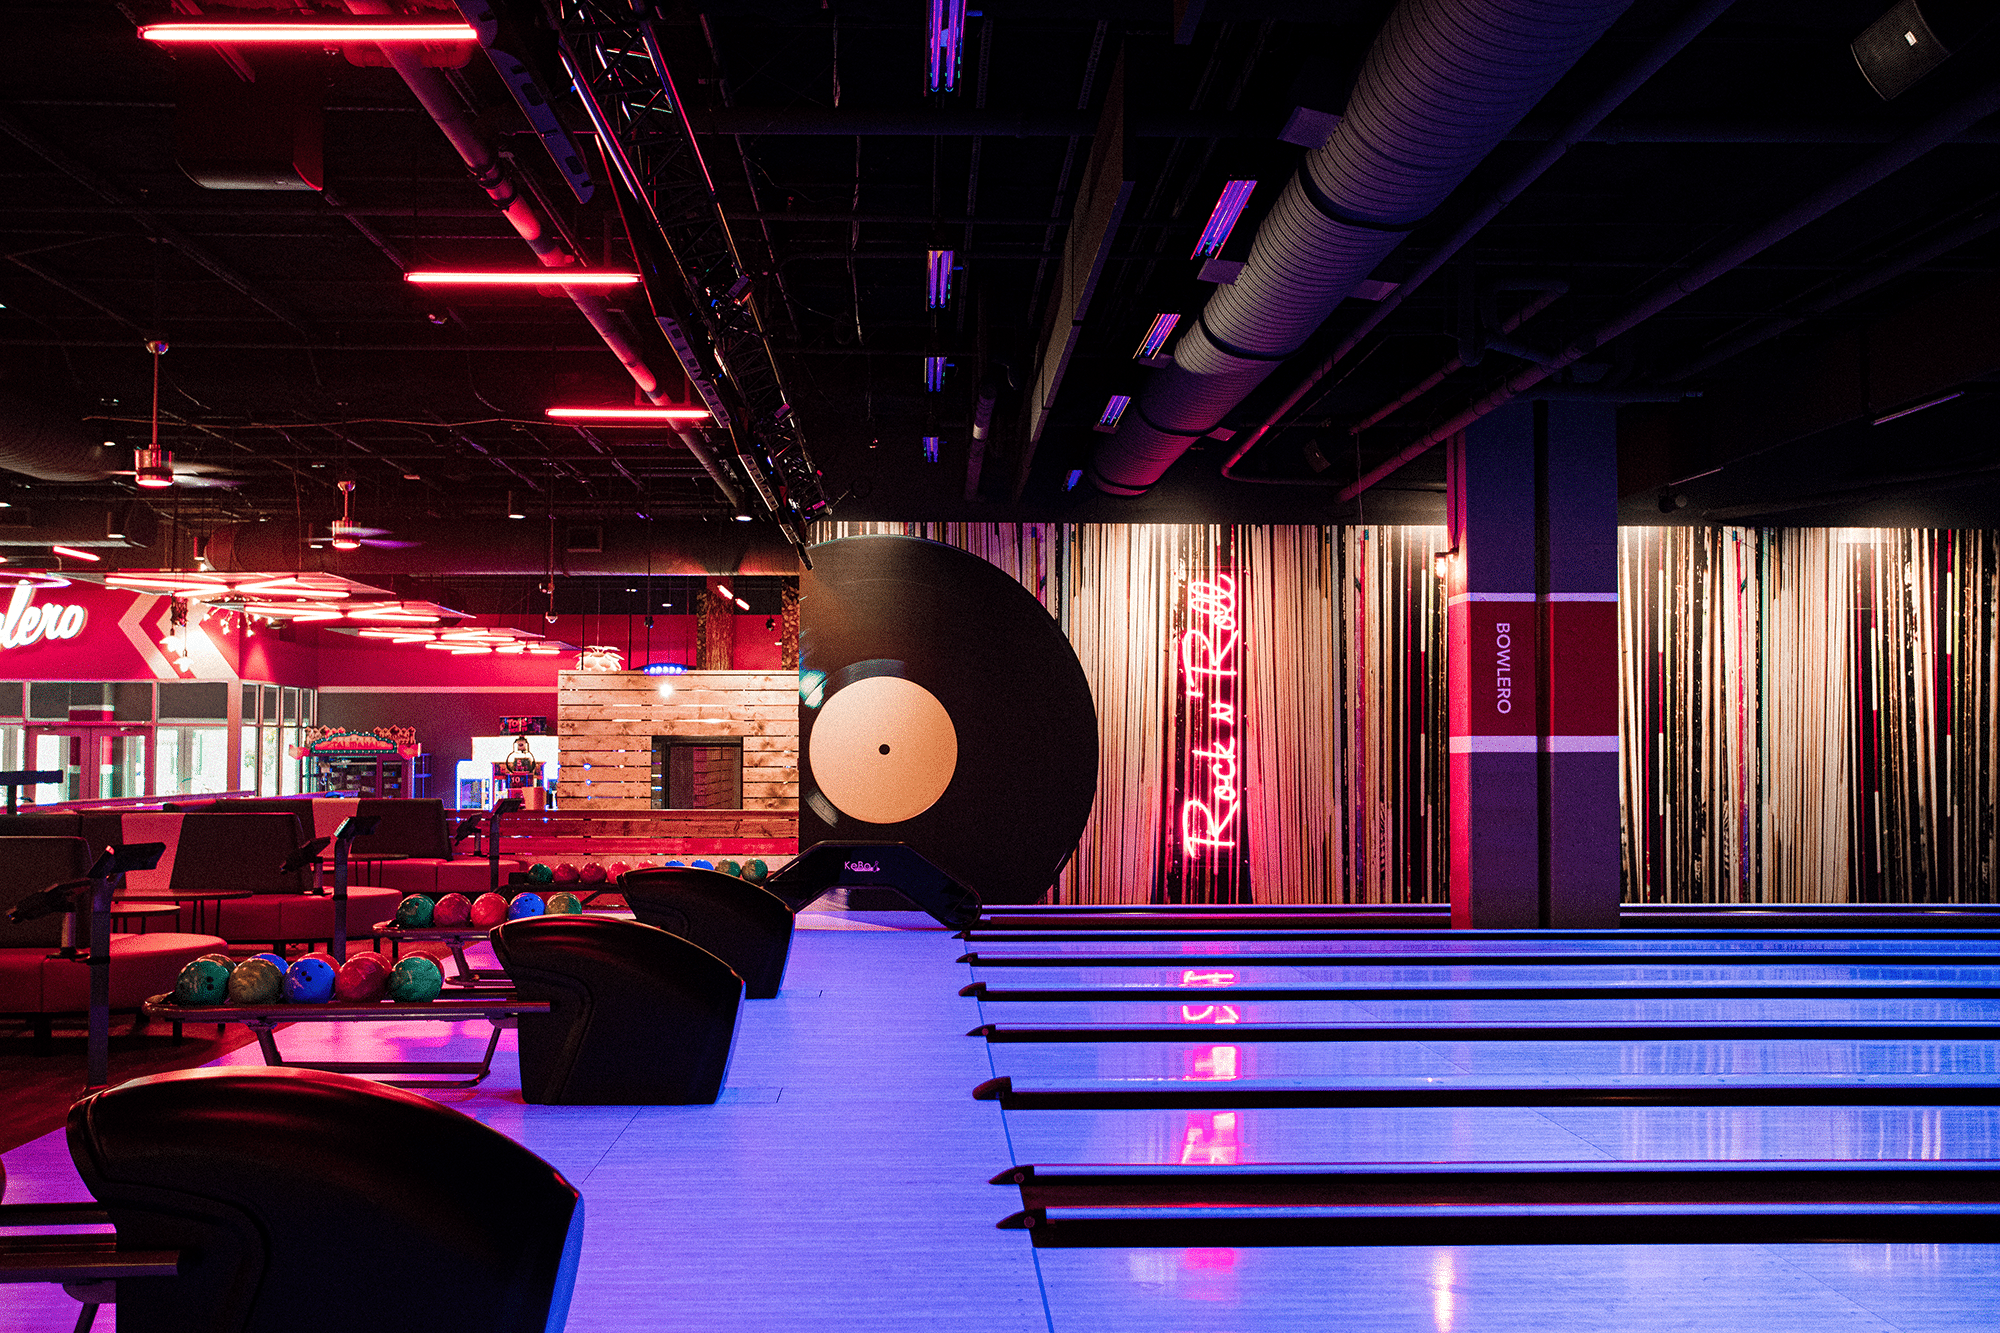 Bowling lanes with red lighting.